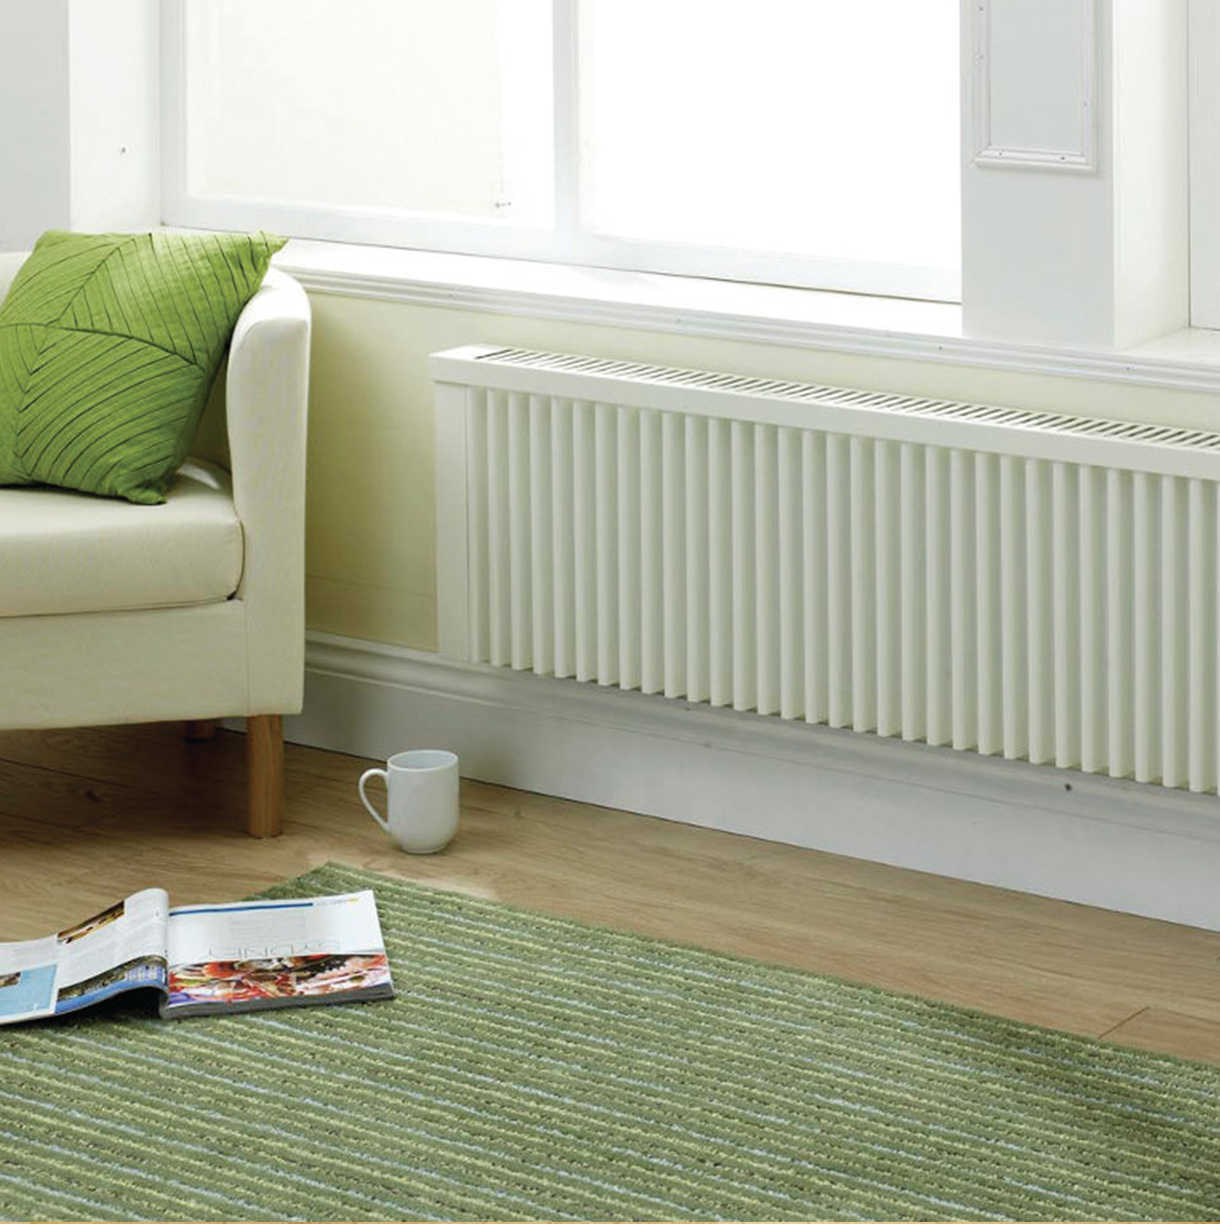 Trusted Heating Comfort